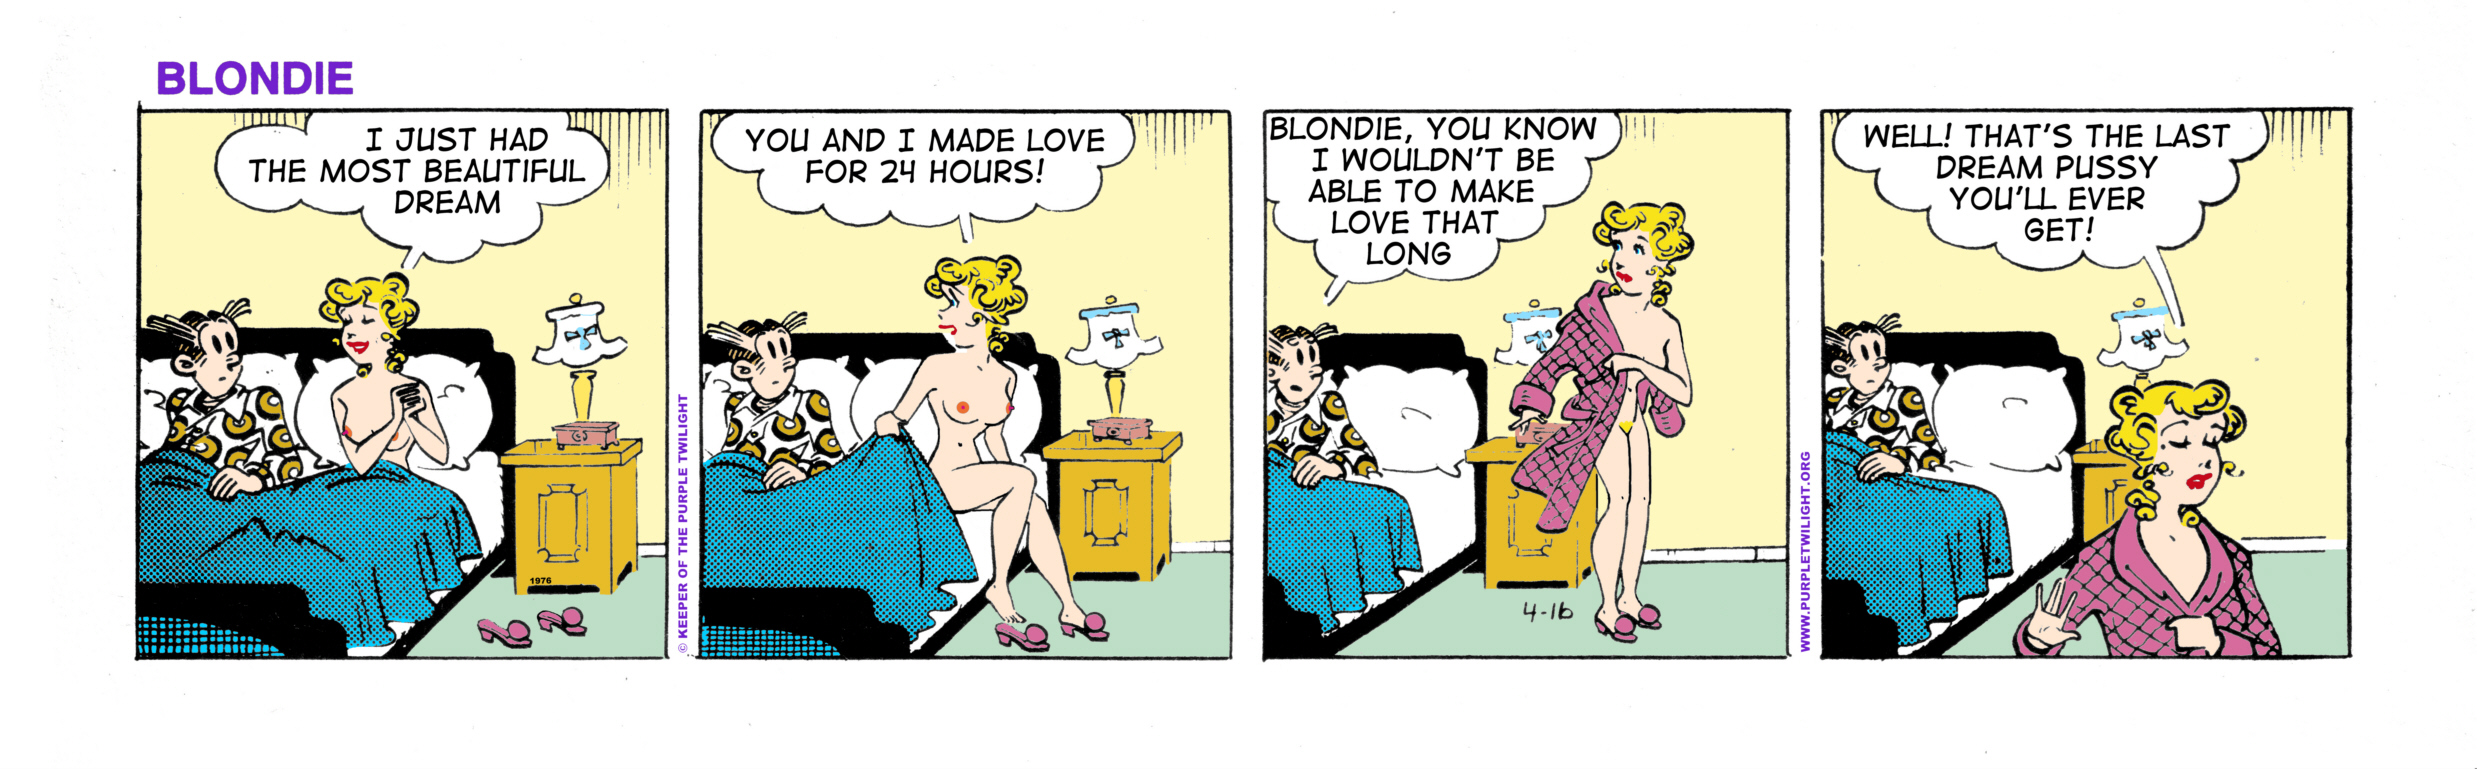 And sex cartoon blondie dagwood apologise, but not